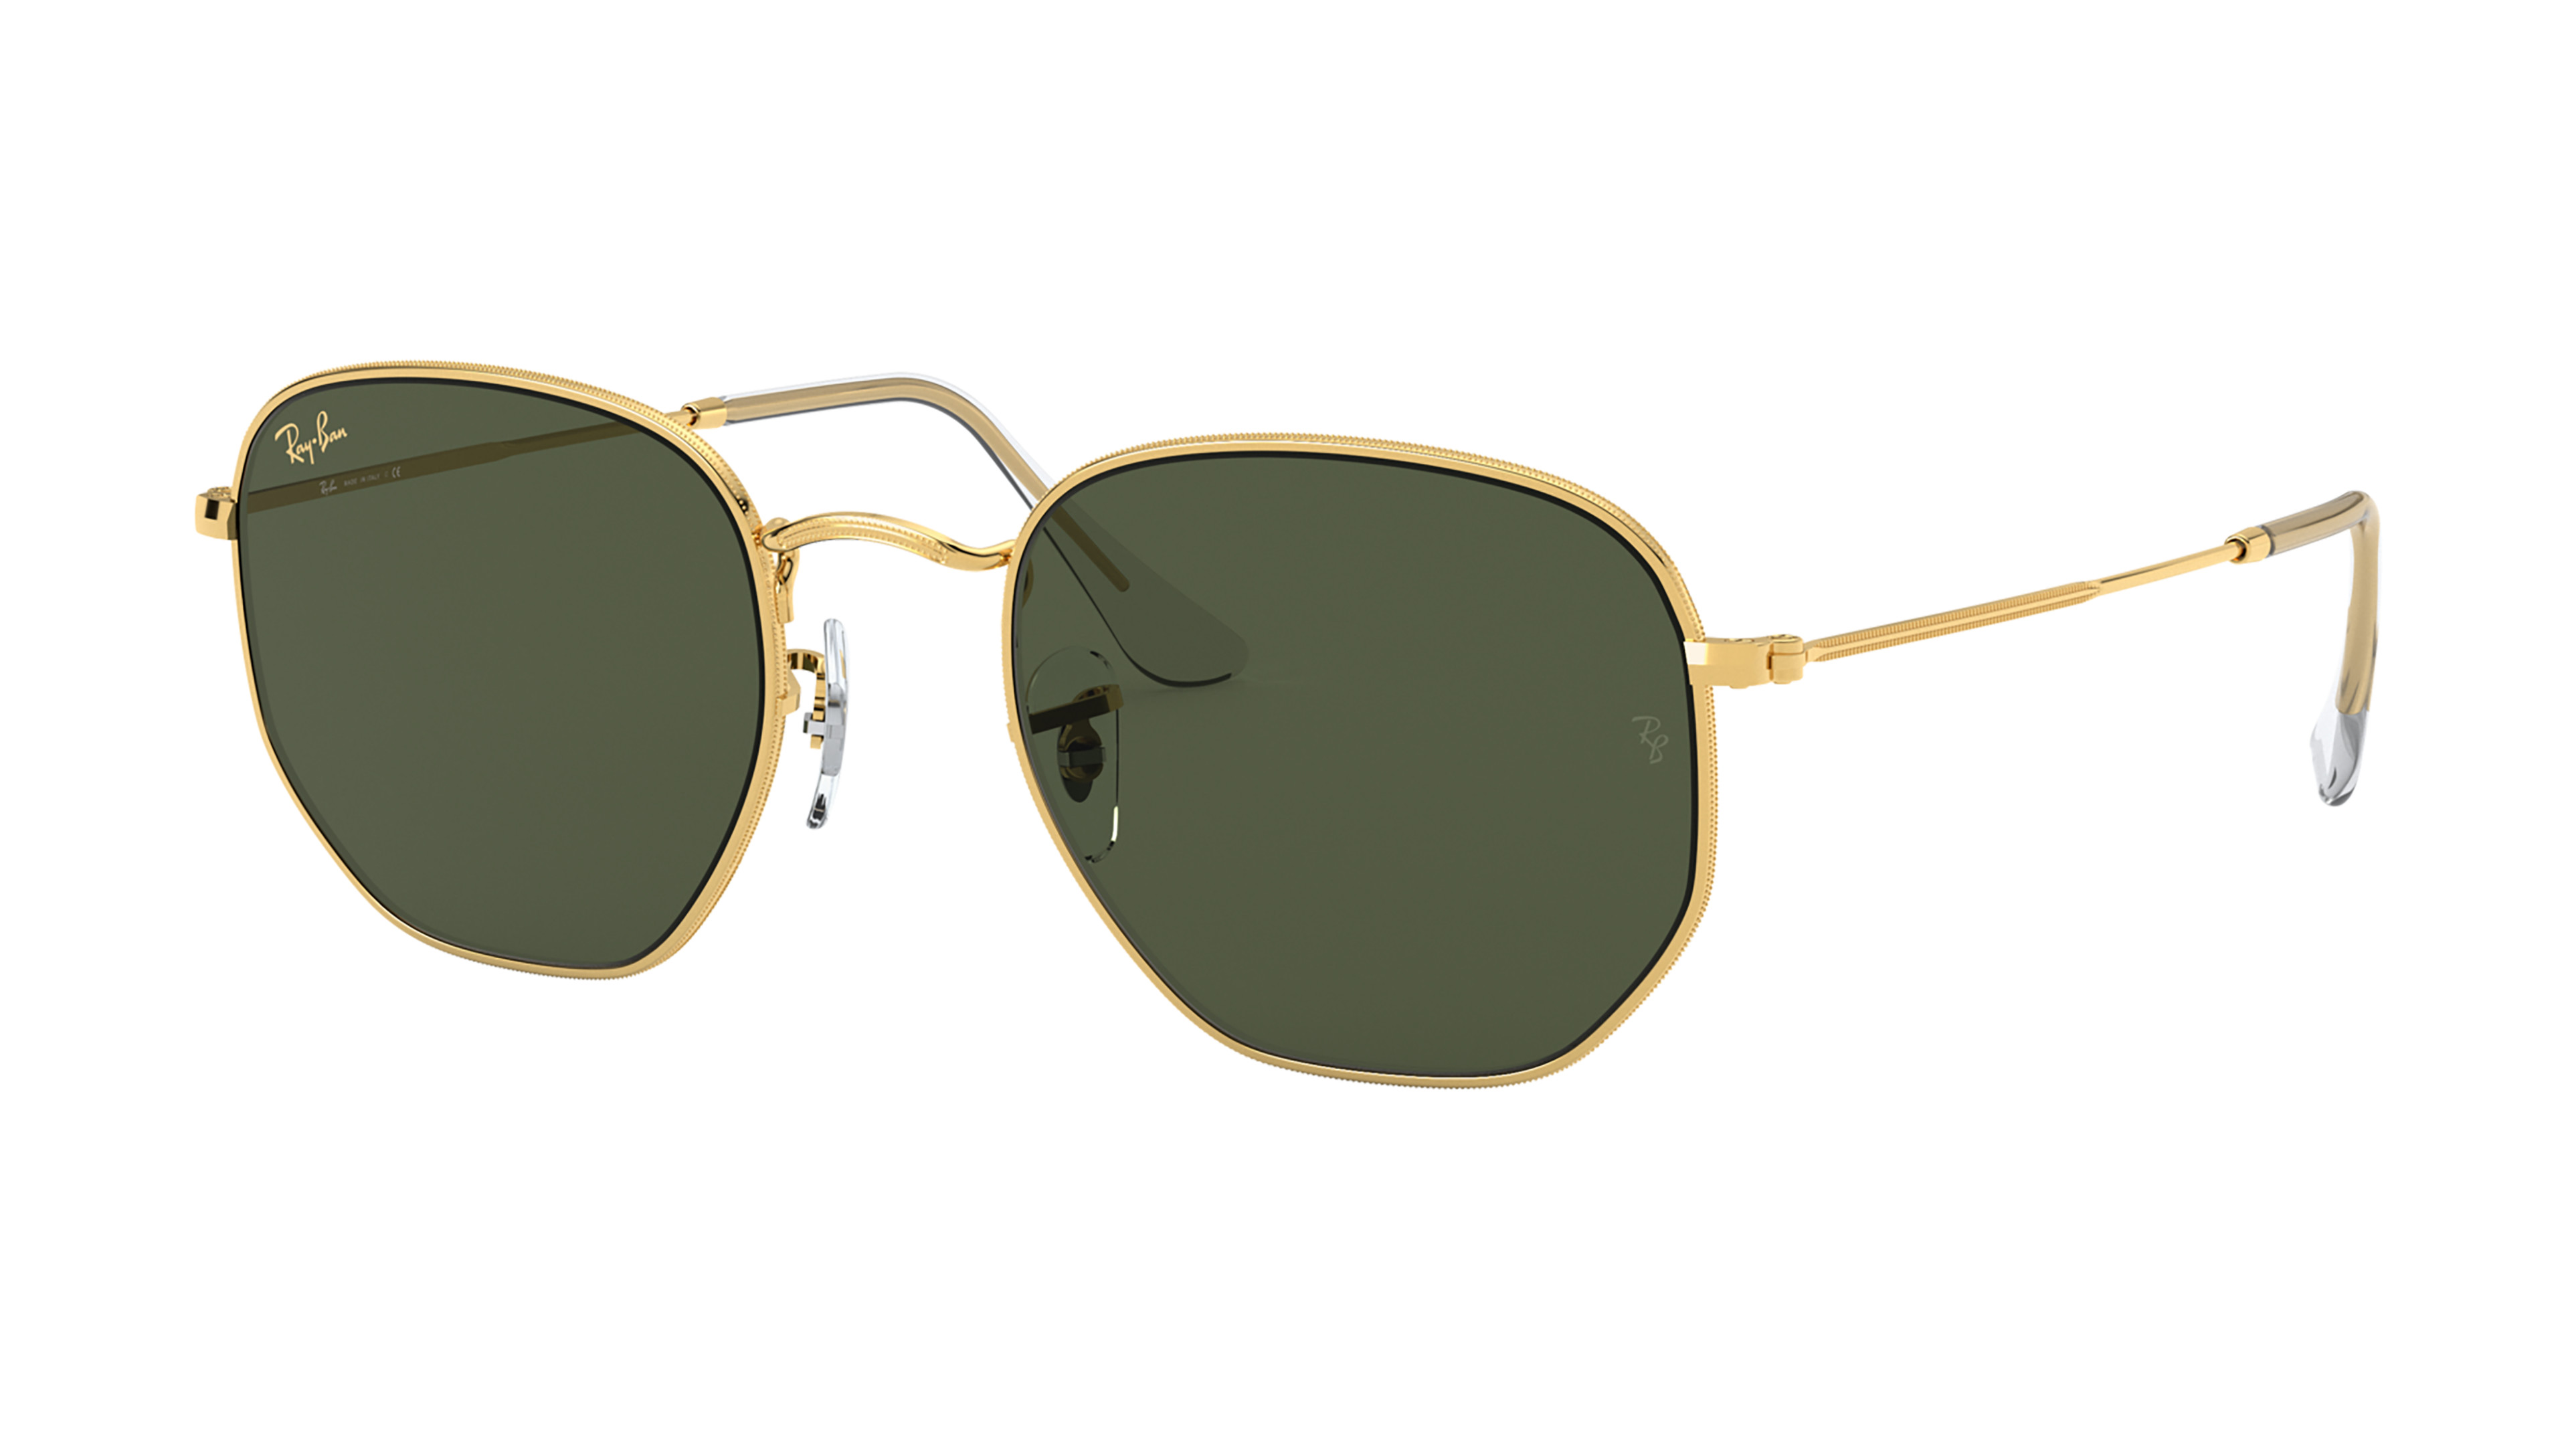 8056597209663-angle-ray-ban-sonnenbrille-0RB3548-919631-000A